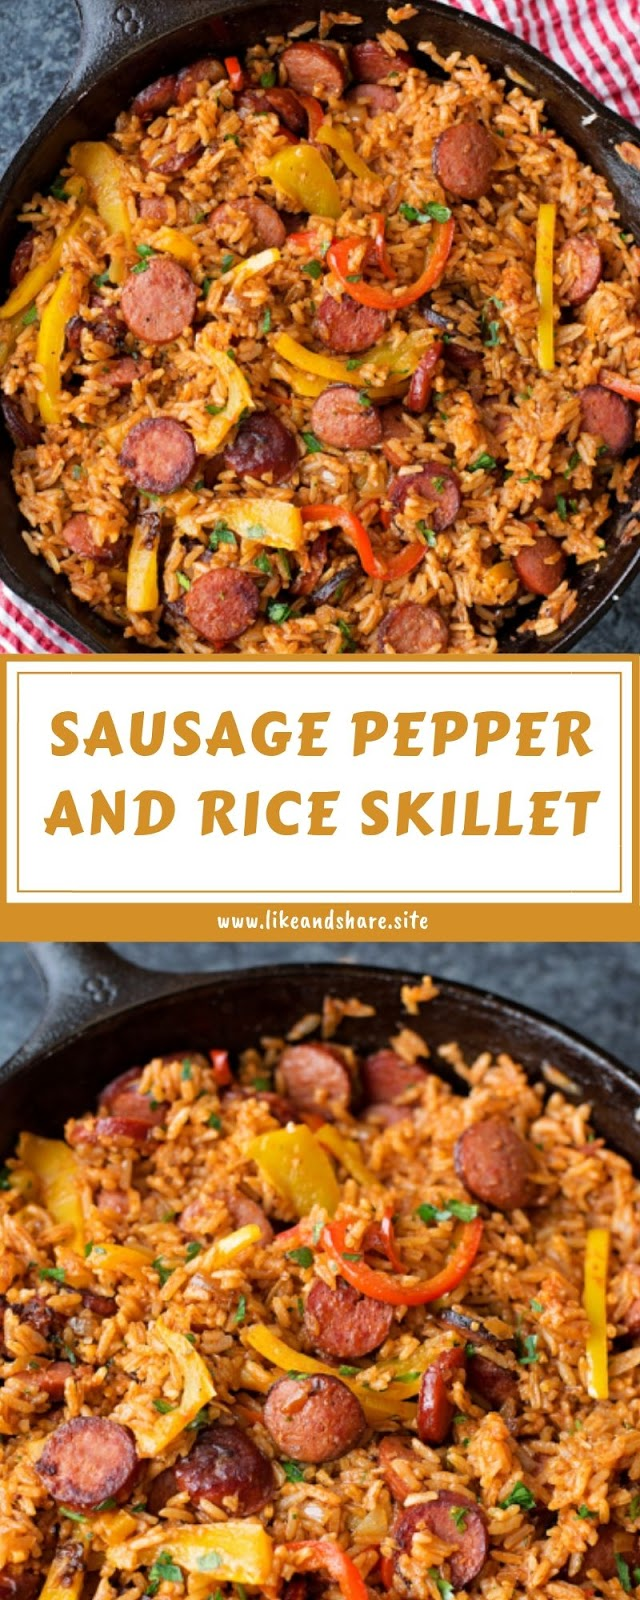 Sasusage Pepper And Rice Skillet